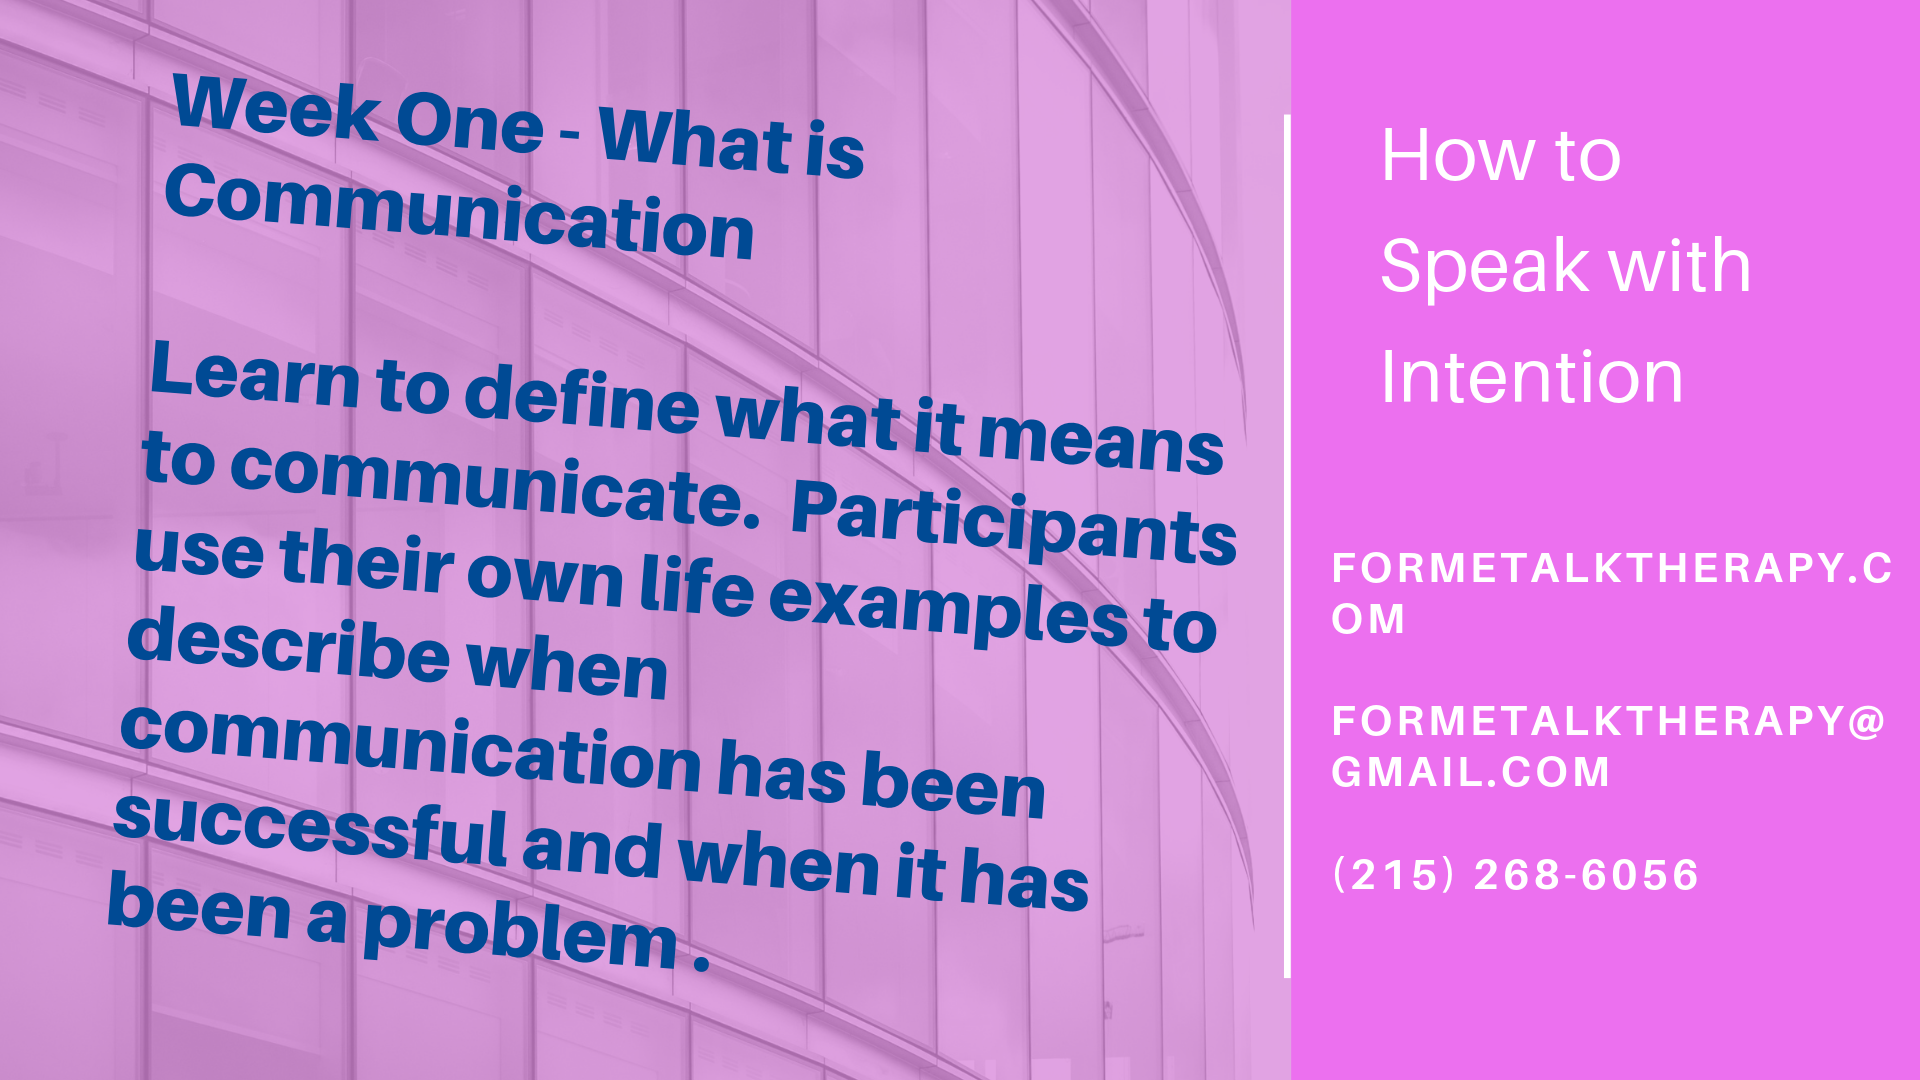 How to Speak with Intention